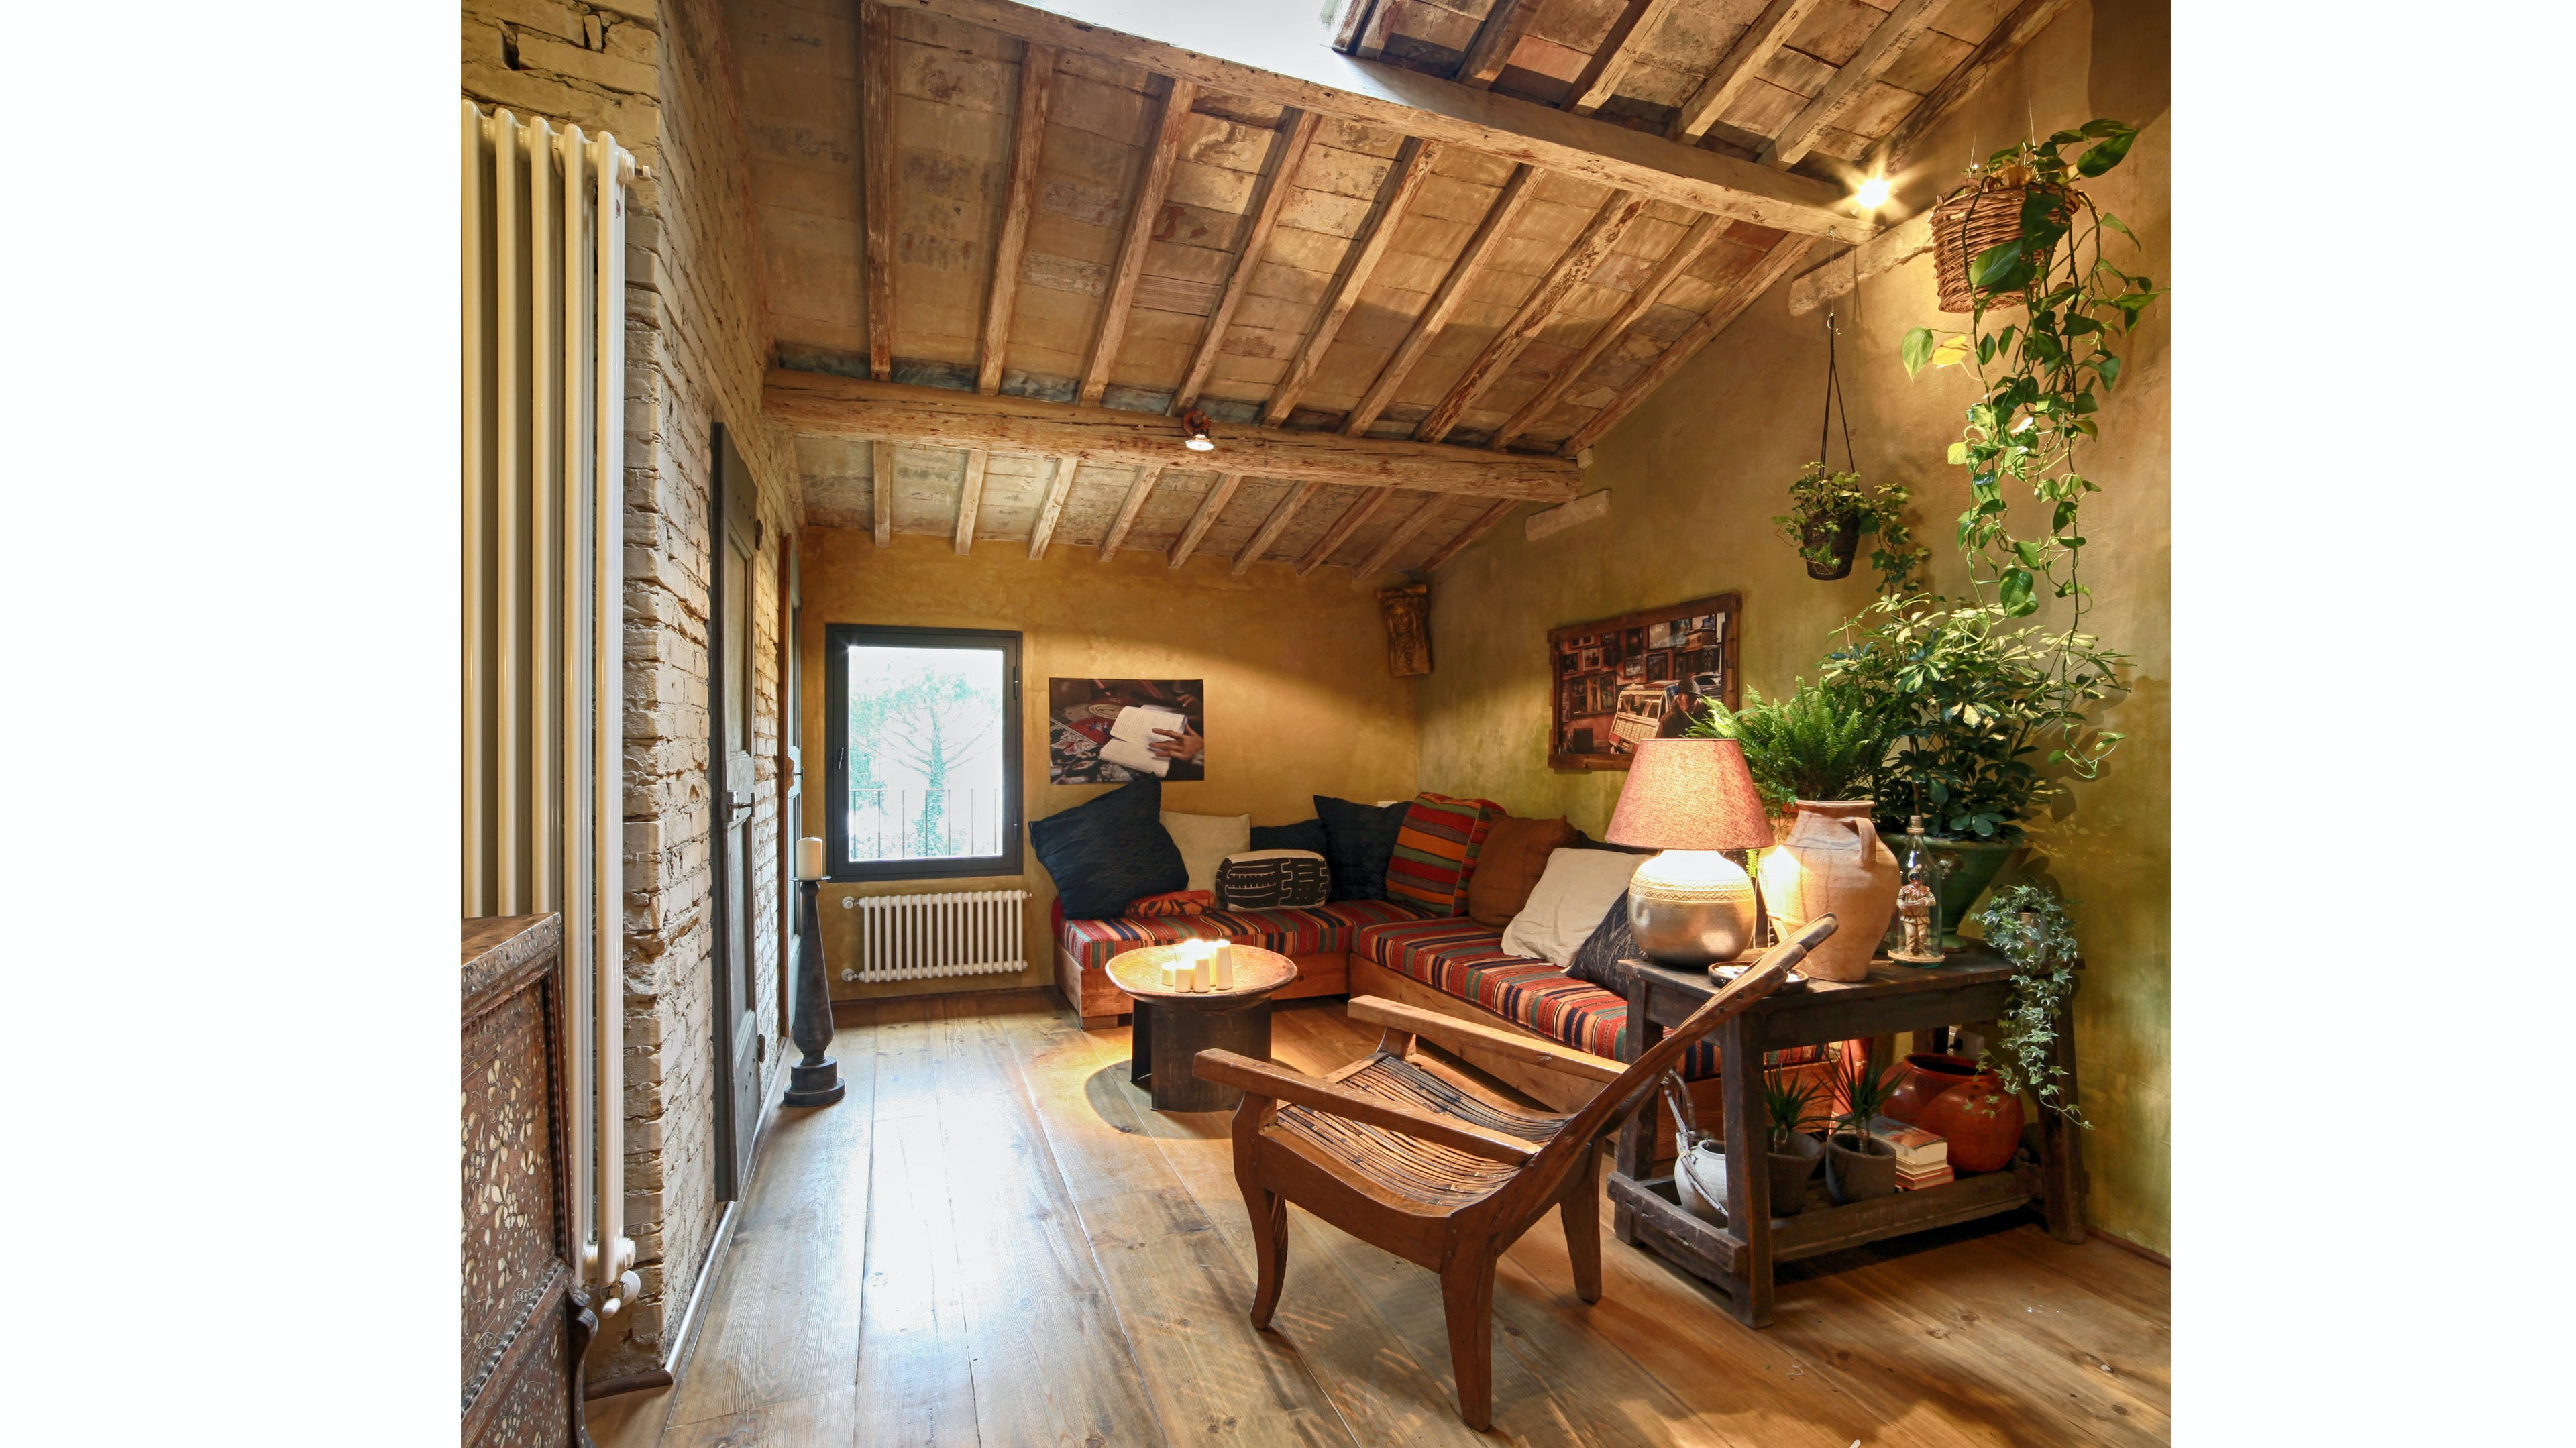 Casa Monti alle Croci, Italy -  - New York City Townhouse Real Estate